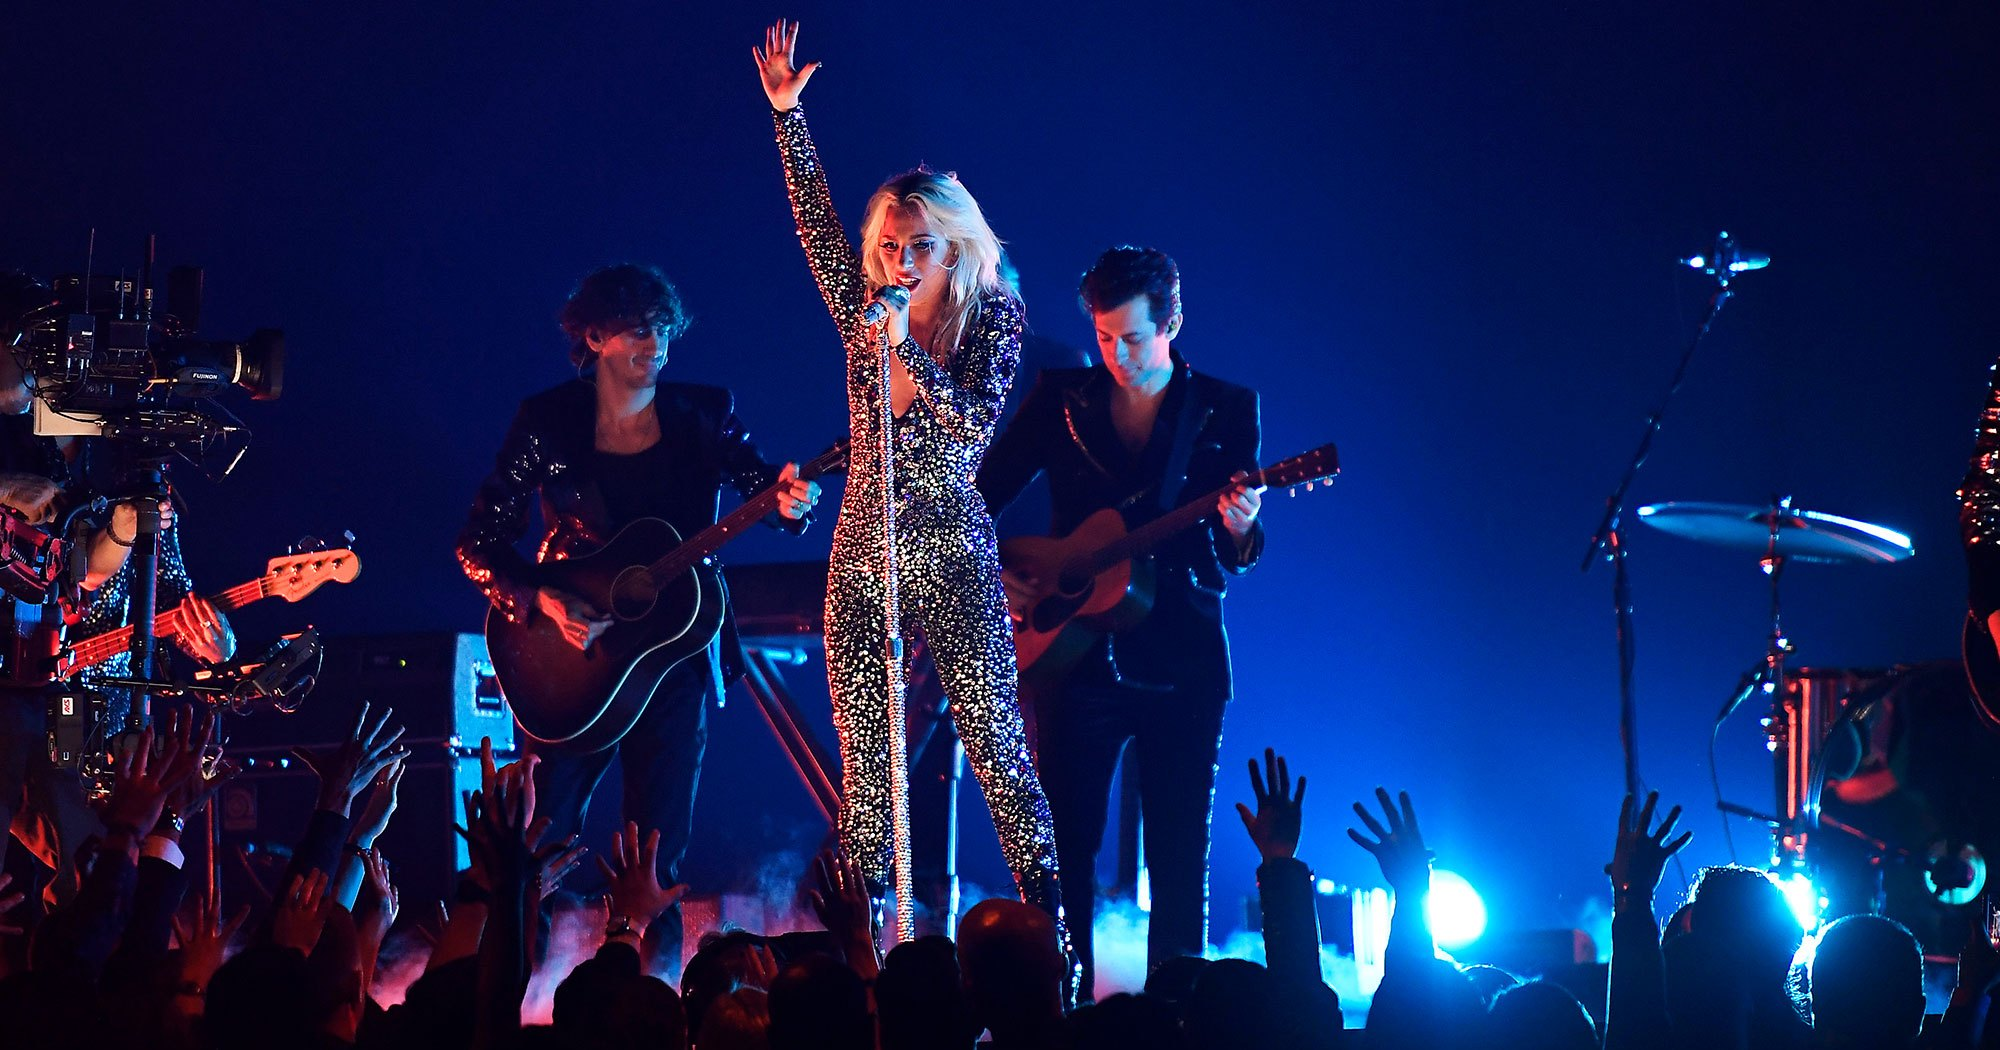 Watch Lady Gaga Rock Out to 'Shallow' at Grammys